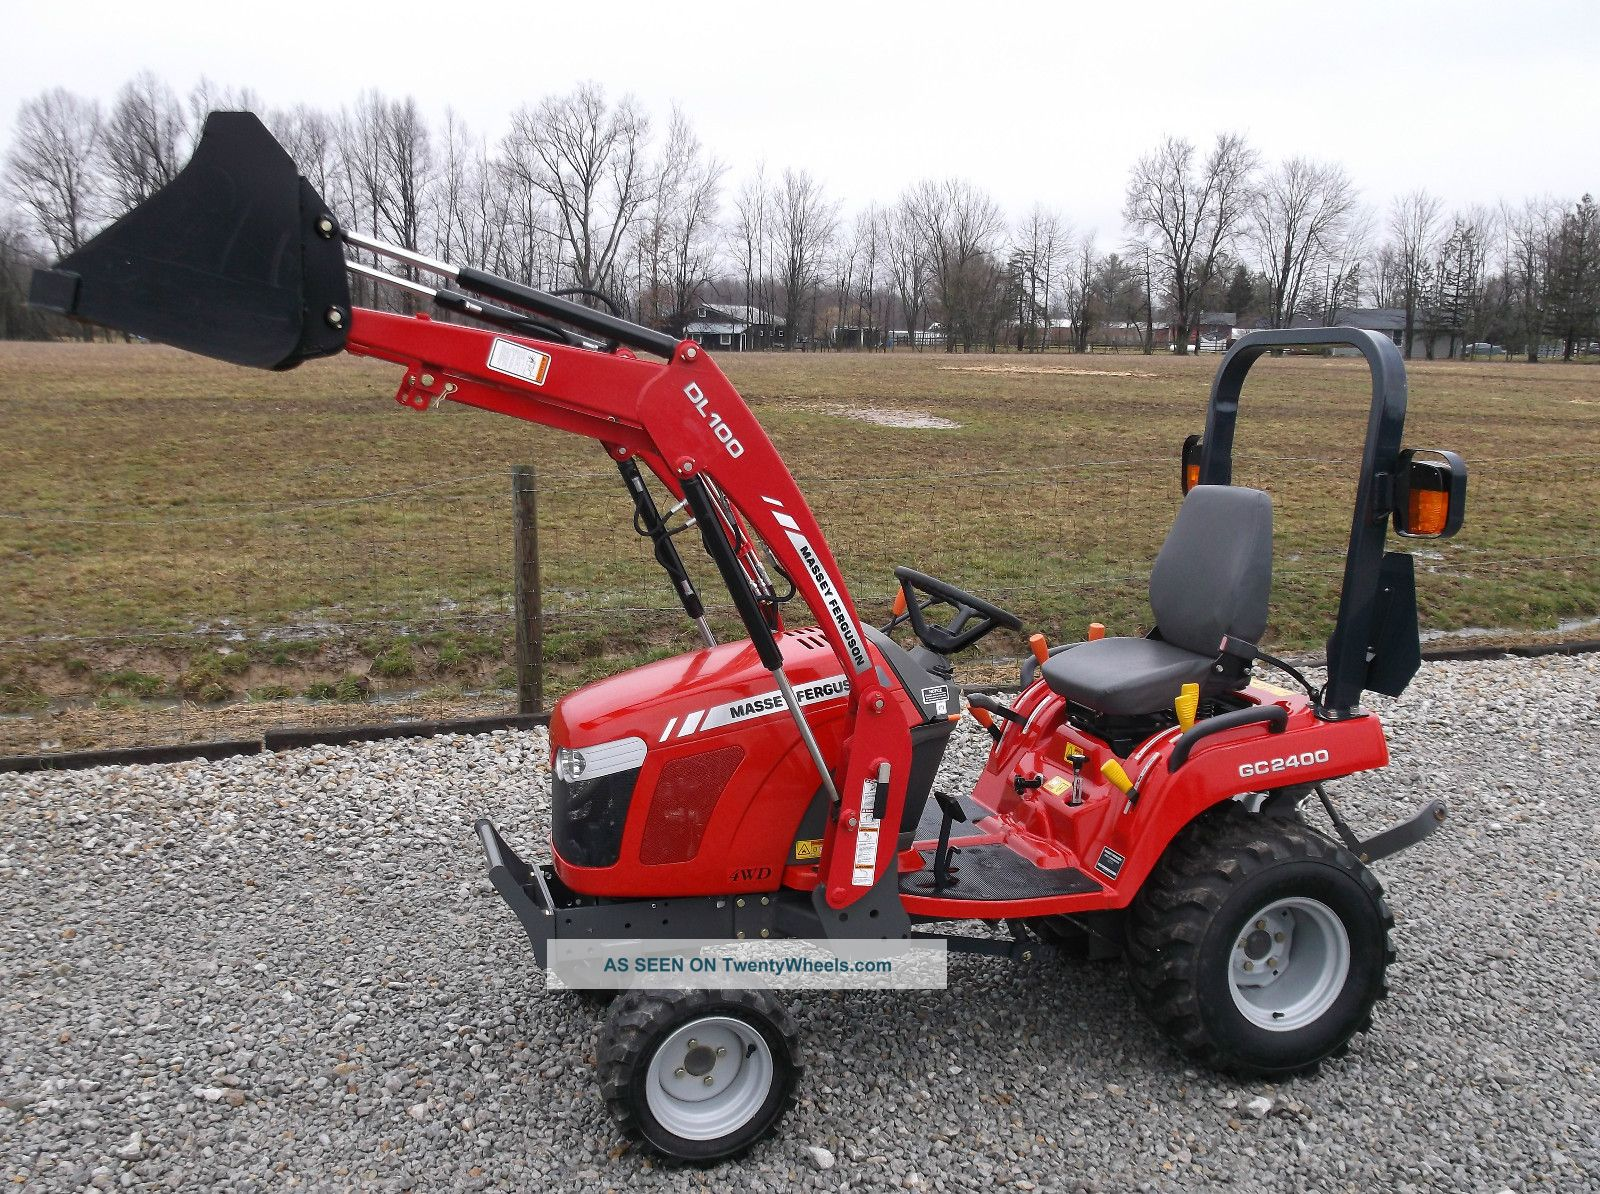 2012 massey ferguson gc 2400 compact tractor front loader 4x4